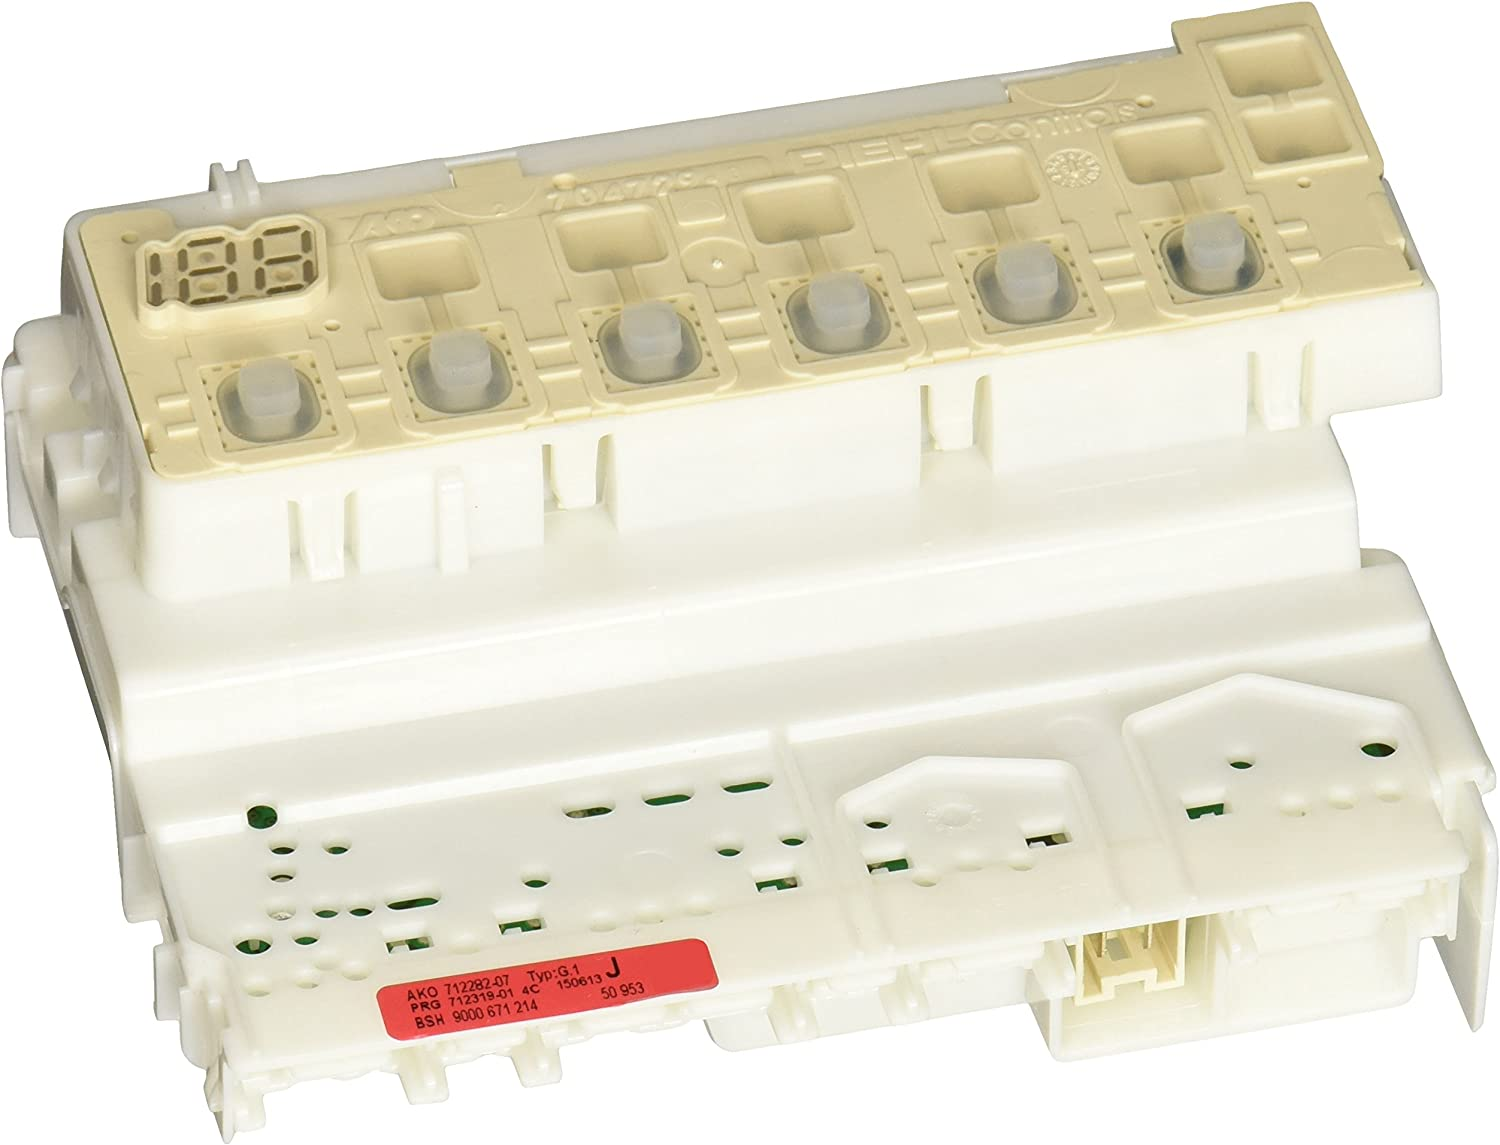 Genuine 445925 Bosch Appliance Control Unit